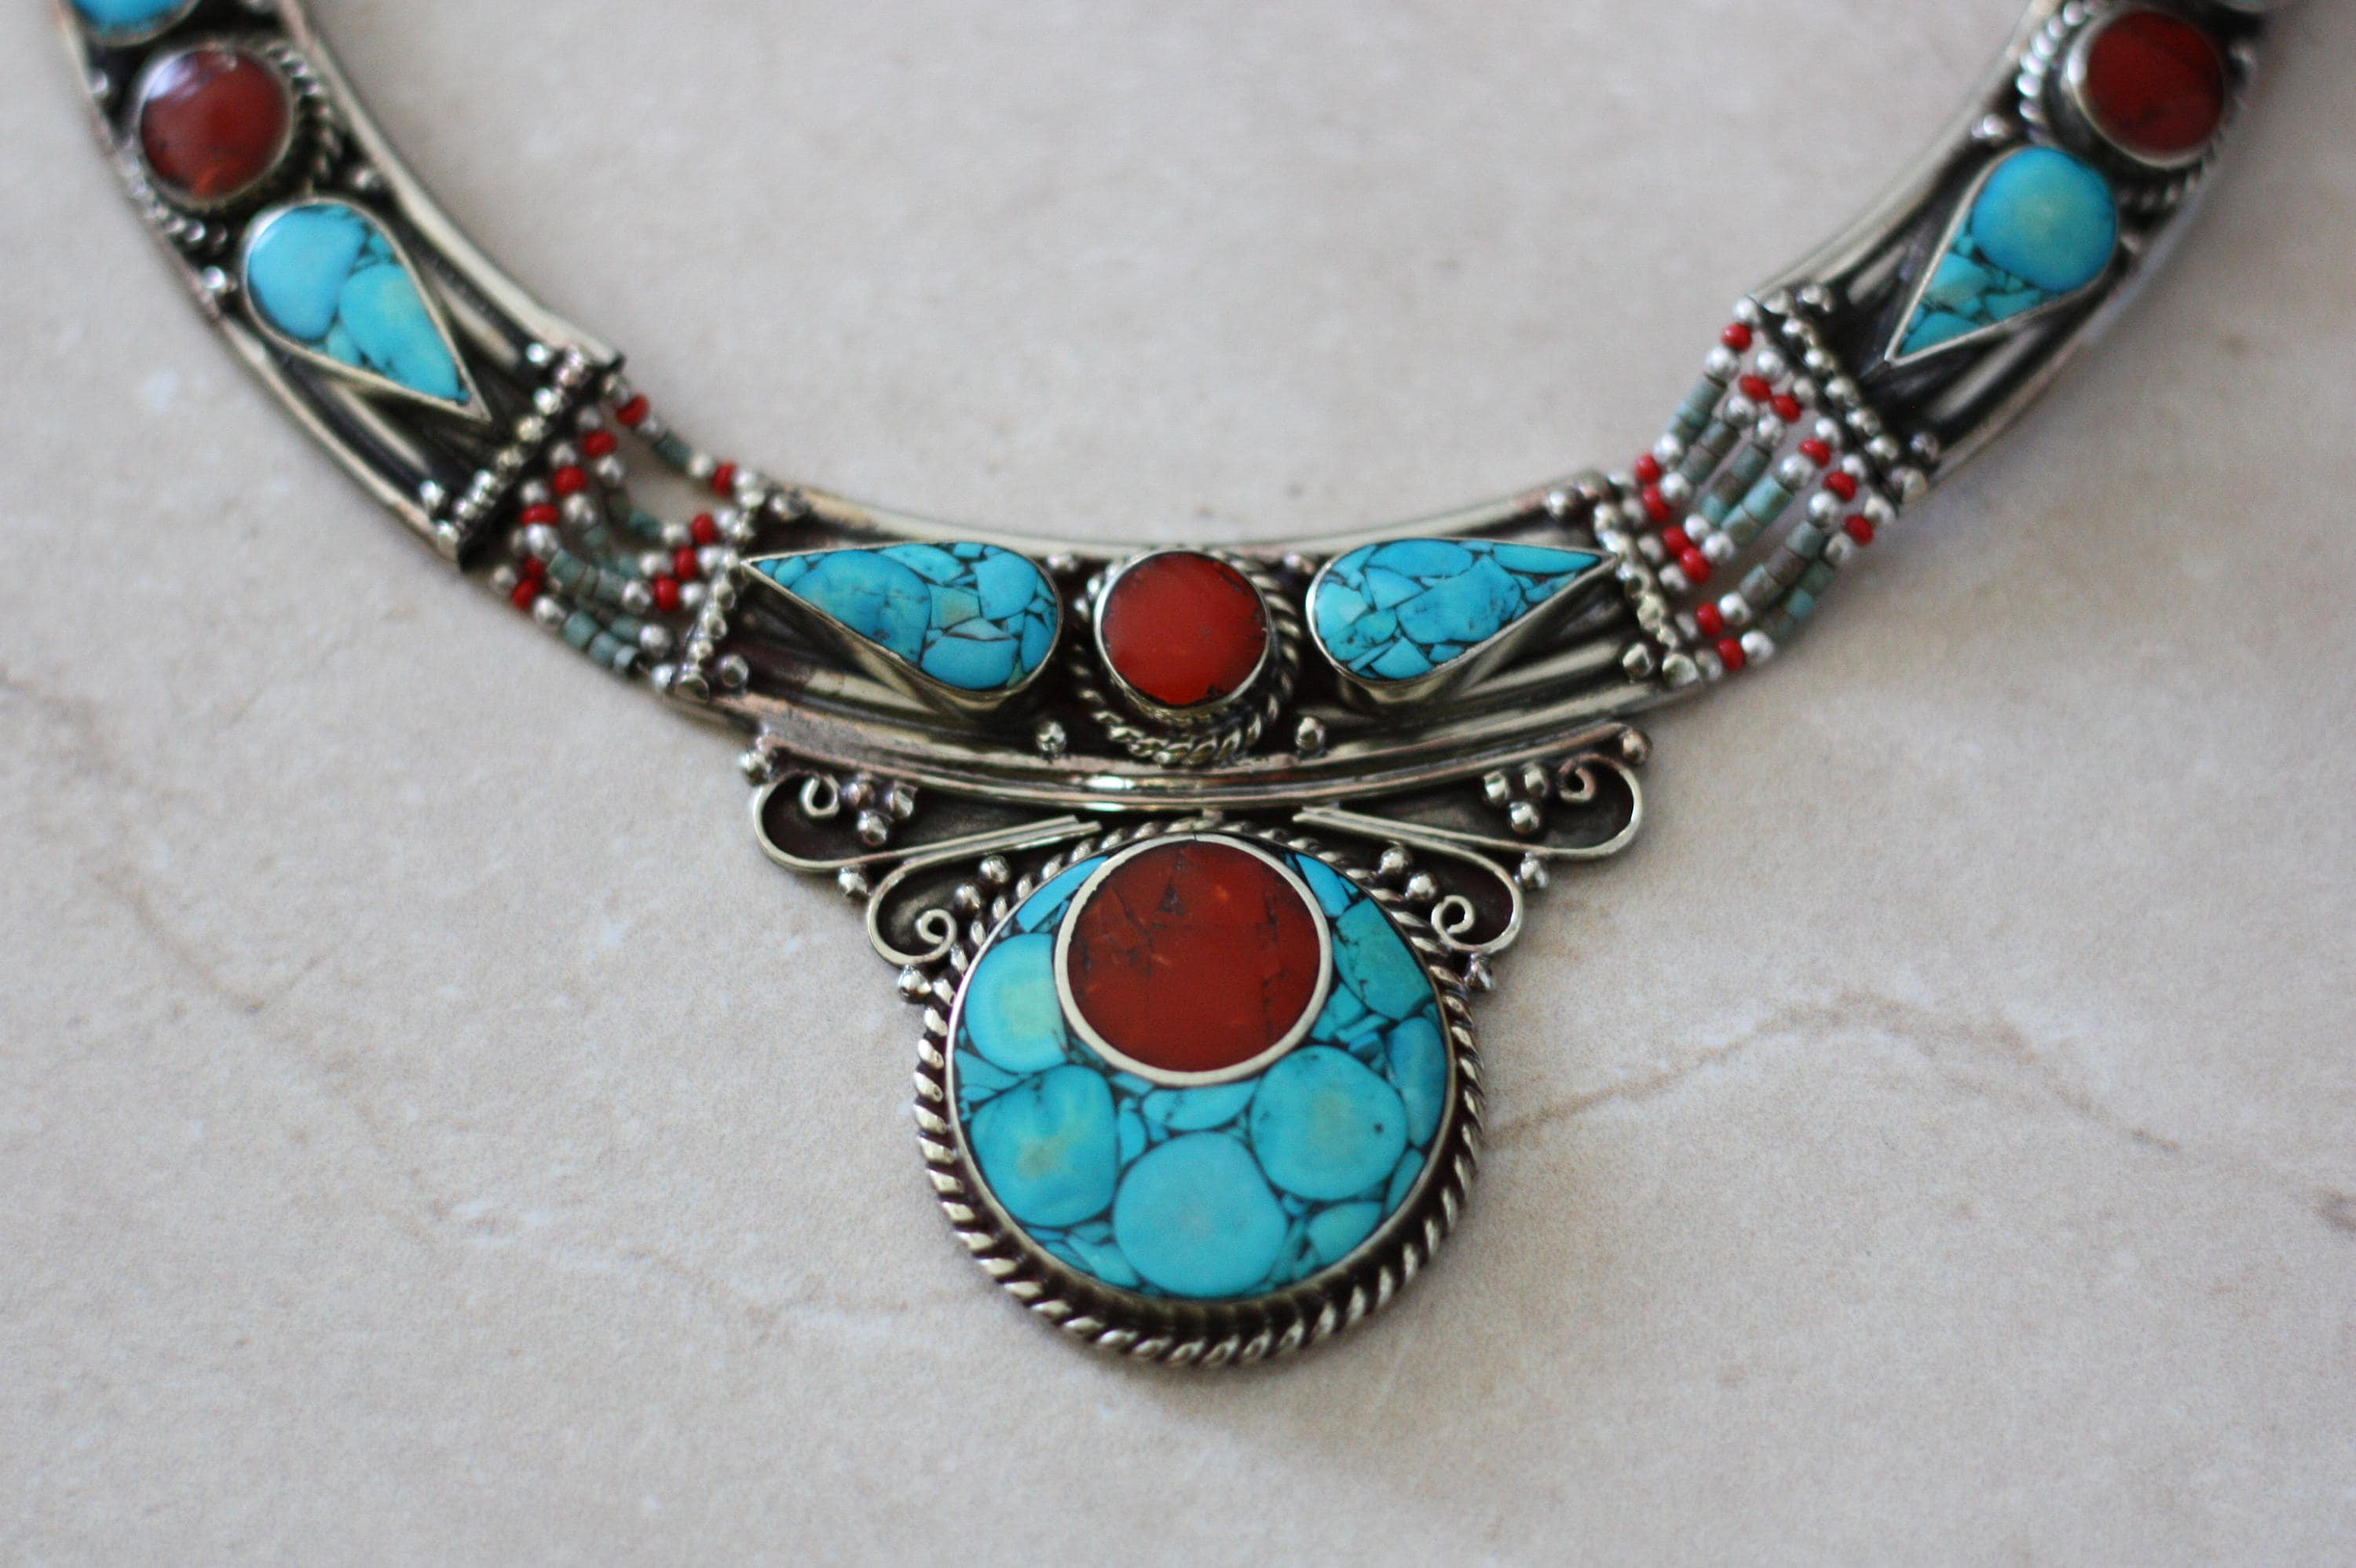 etsy found hey by necklace s listing ethnic really coral bellaemyjewels this at turquoise i awesome pin bead nepali